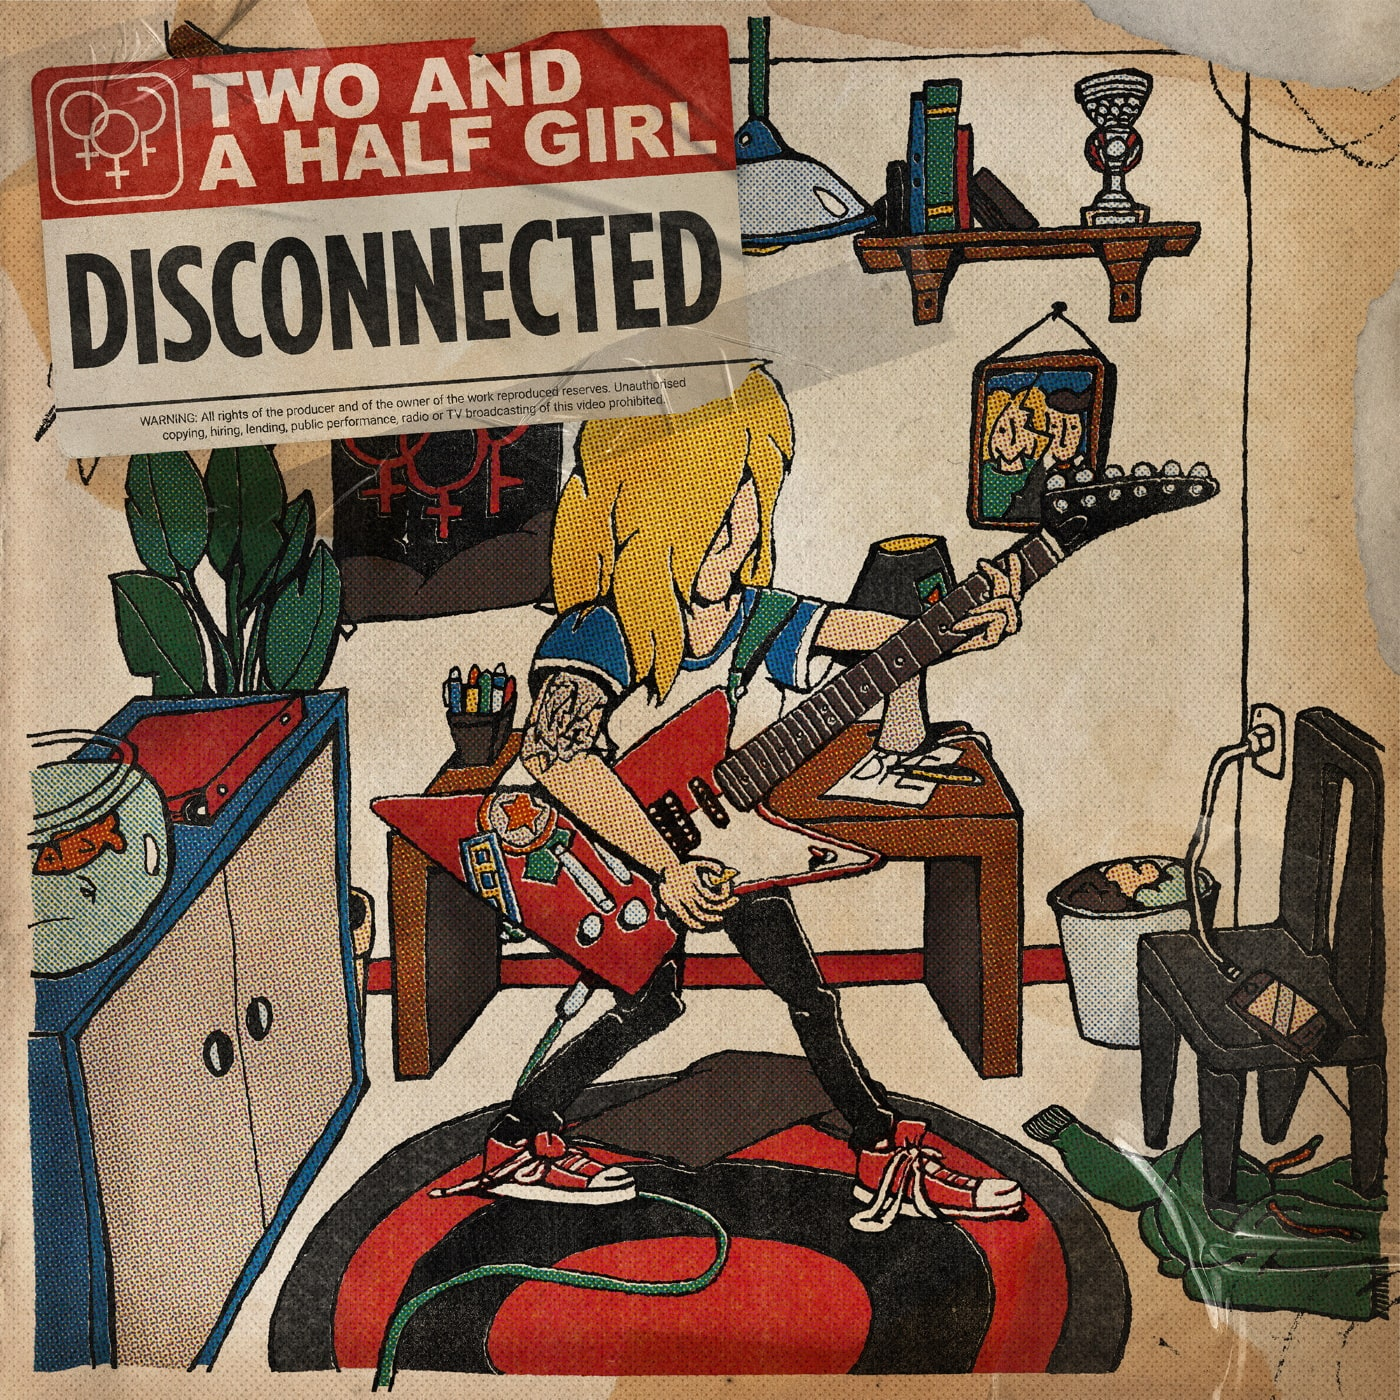 Cover of the new EP Disconnected, cover by Levi Reinds